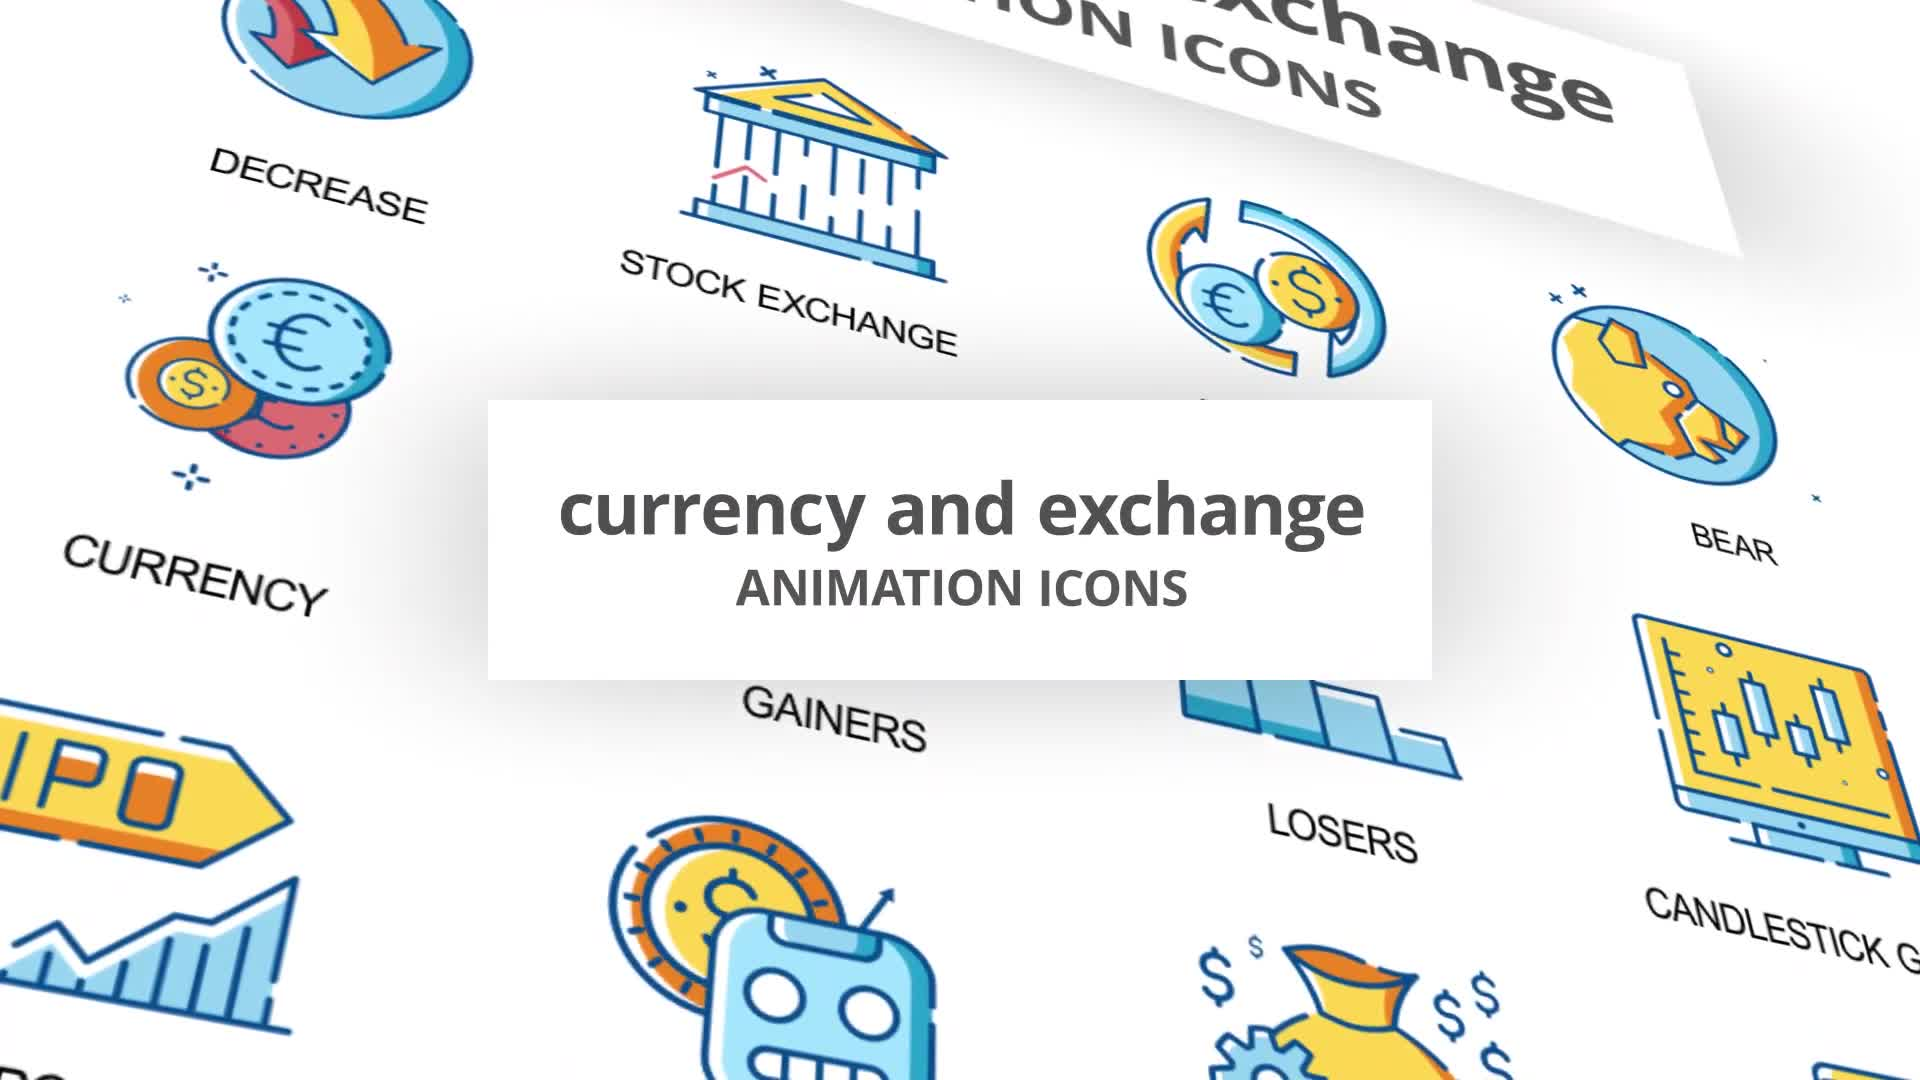 Currency & Exchange Animation Icons Videohive 30260825 After Effects Image 1